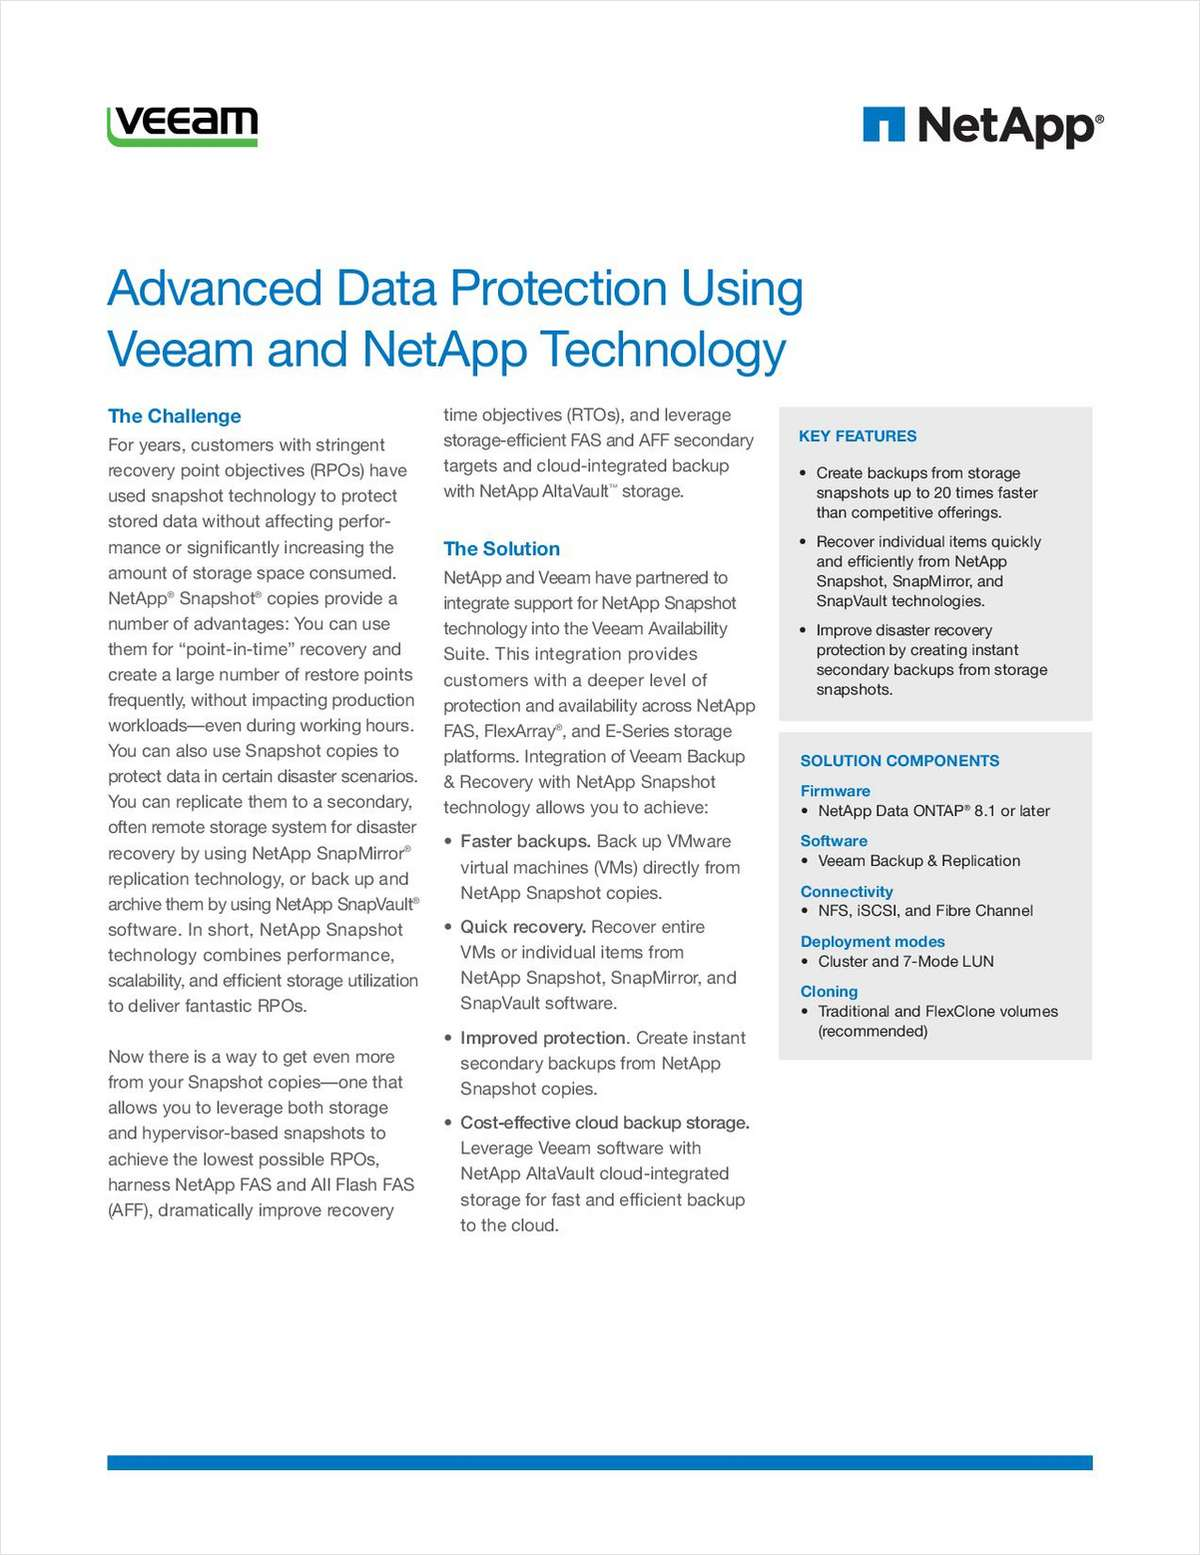 Advanced Data Protection Using Veeam and NetApp Technology